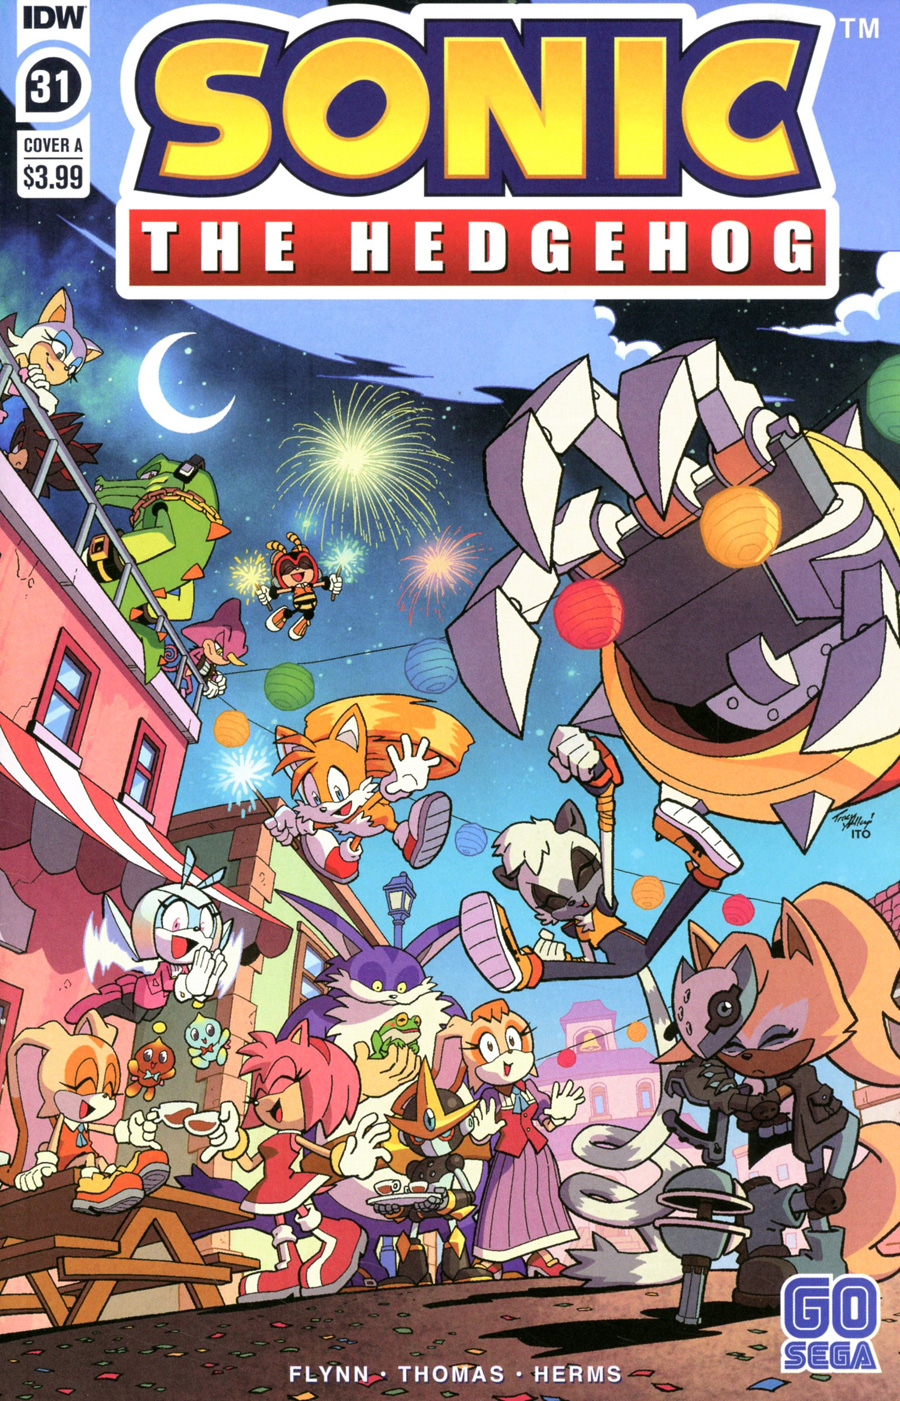 Sonic The Hedgehog Vol 3 #31 Cover A Regular Tracy Yardley Cover